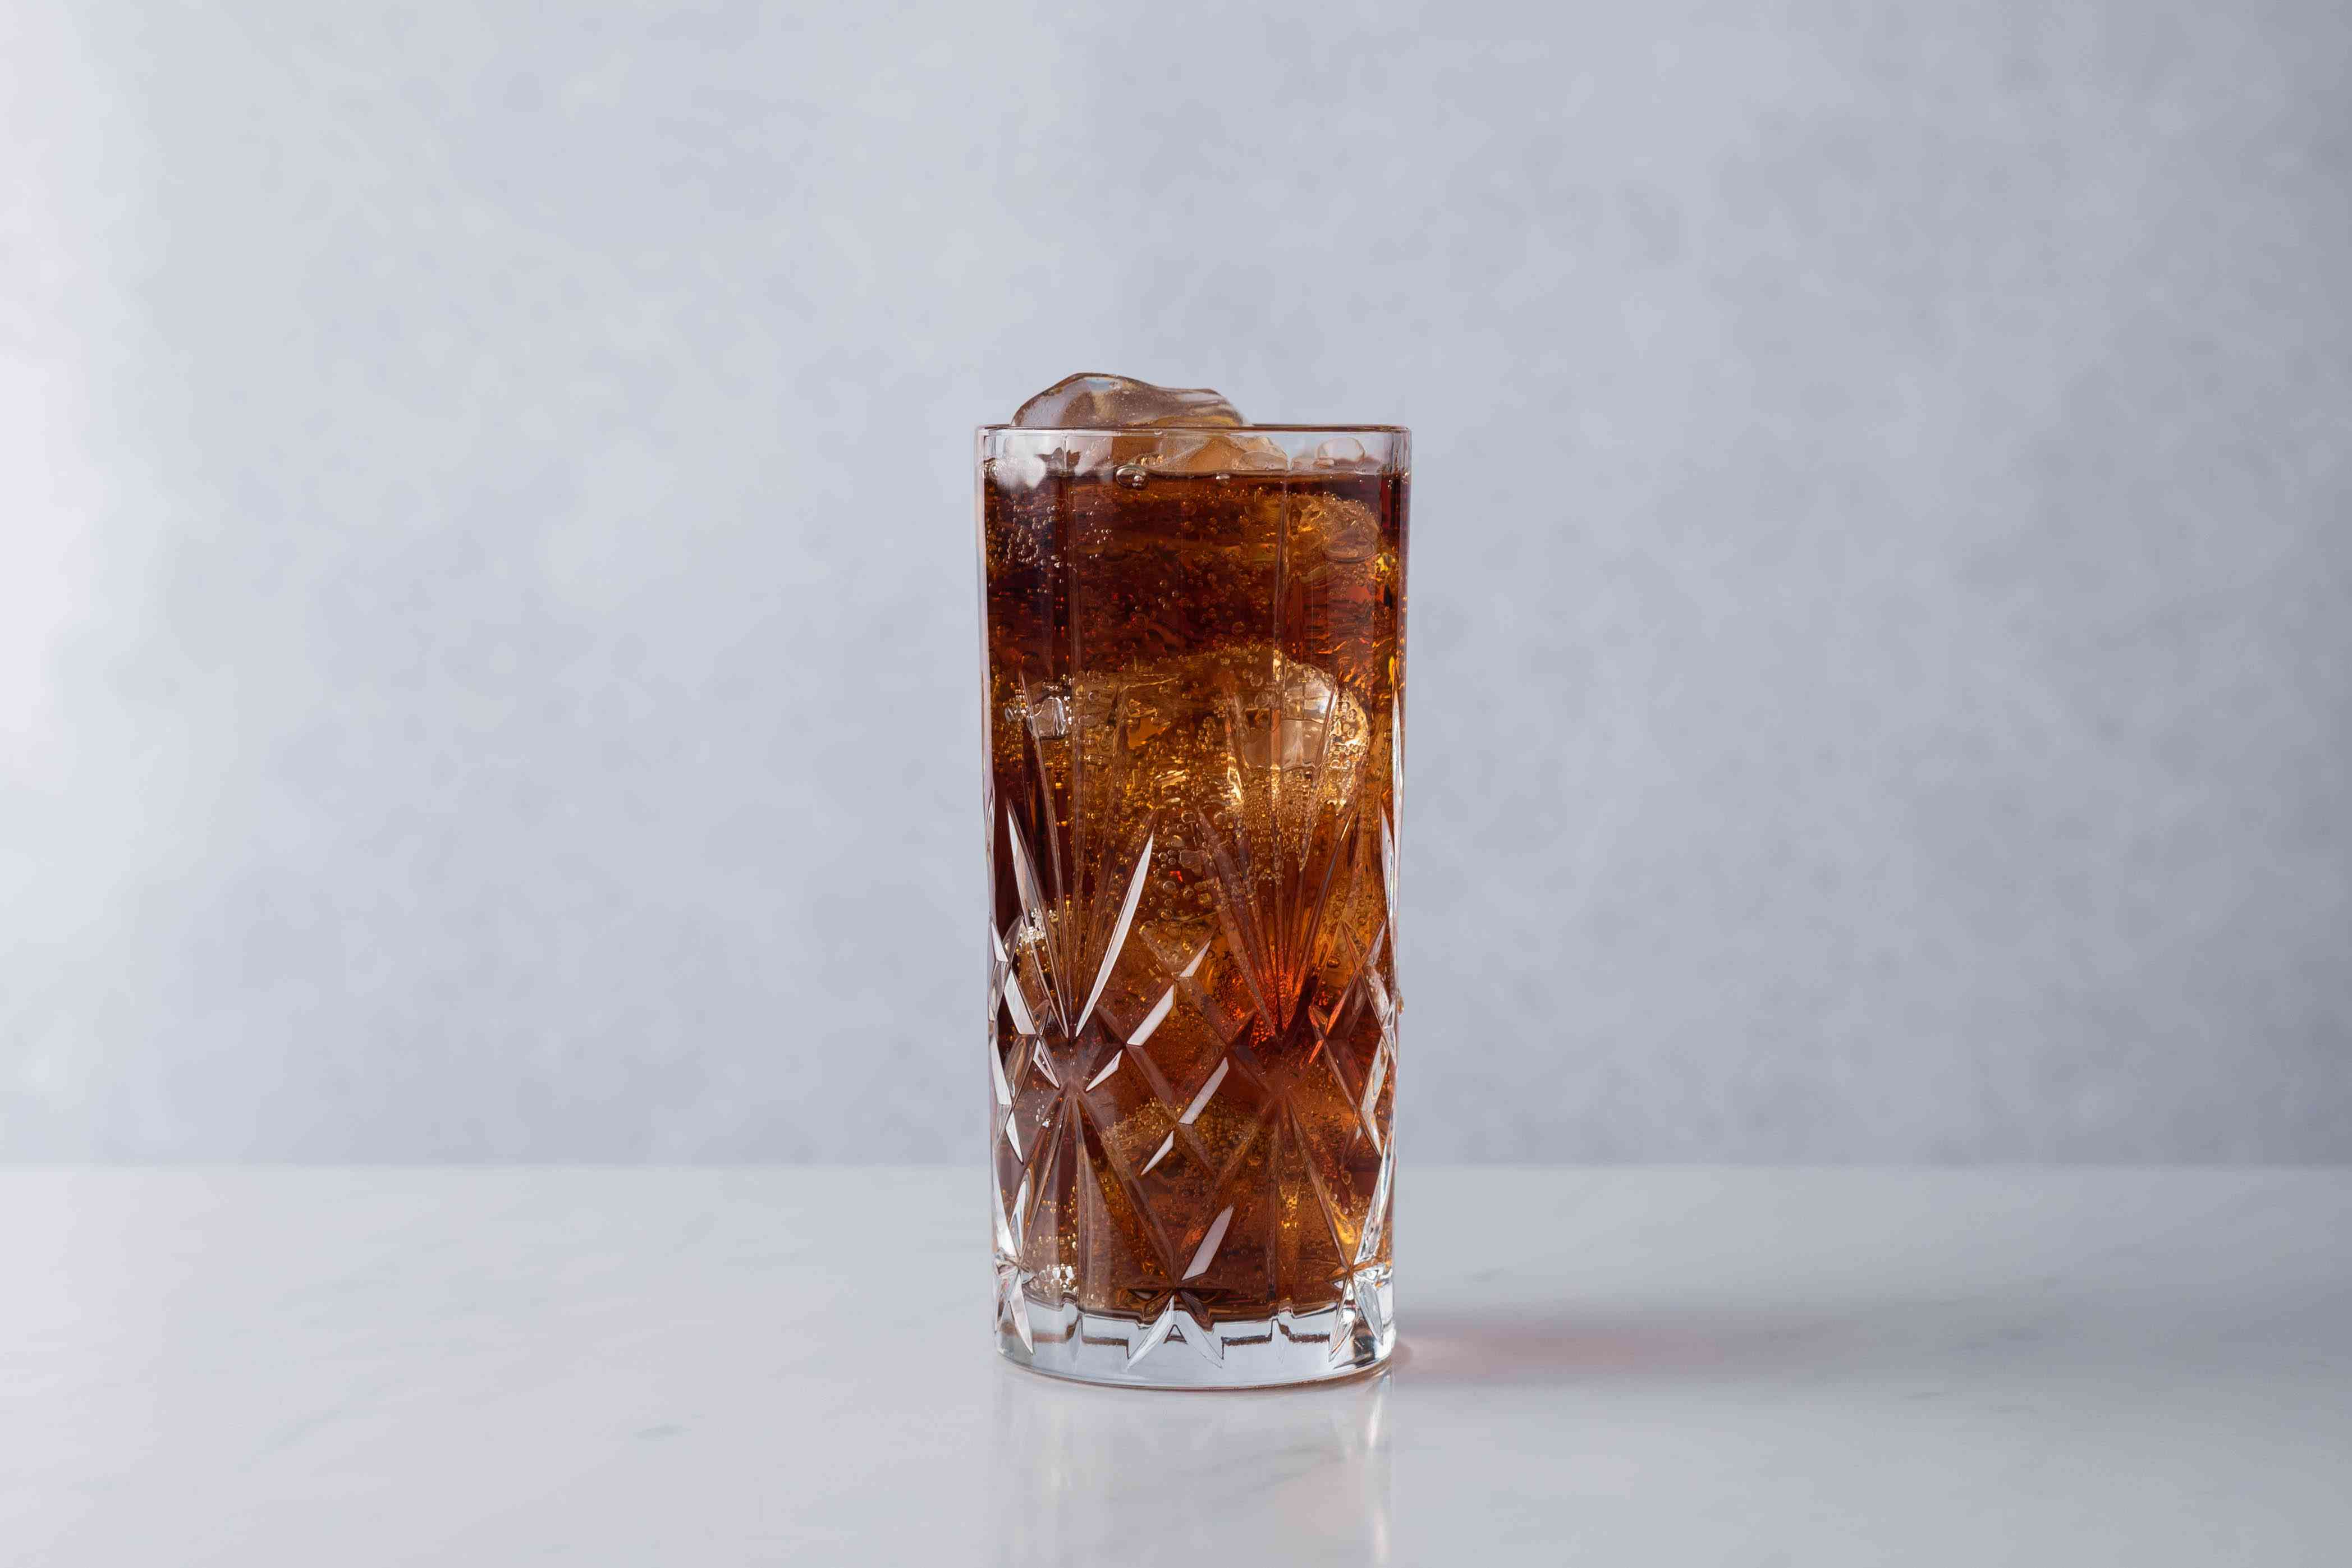 Fill the glass with cola